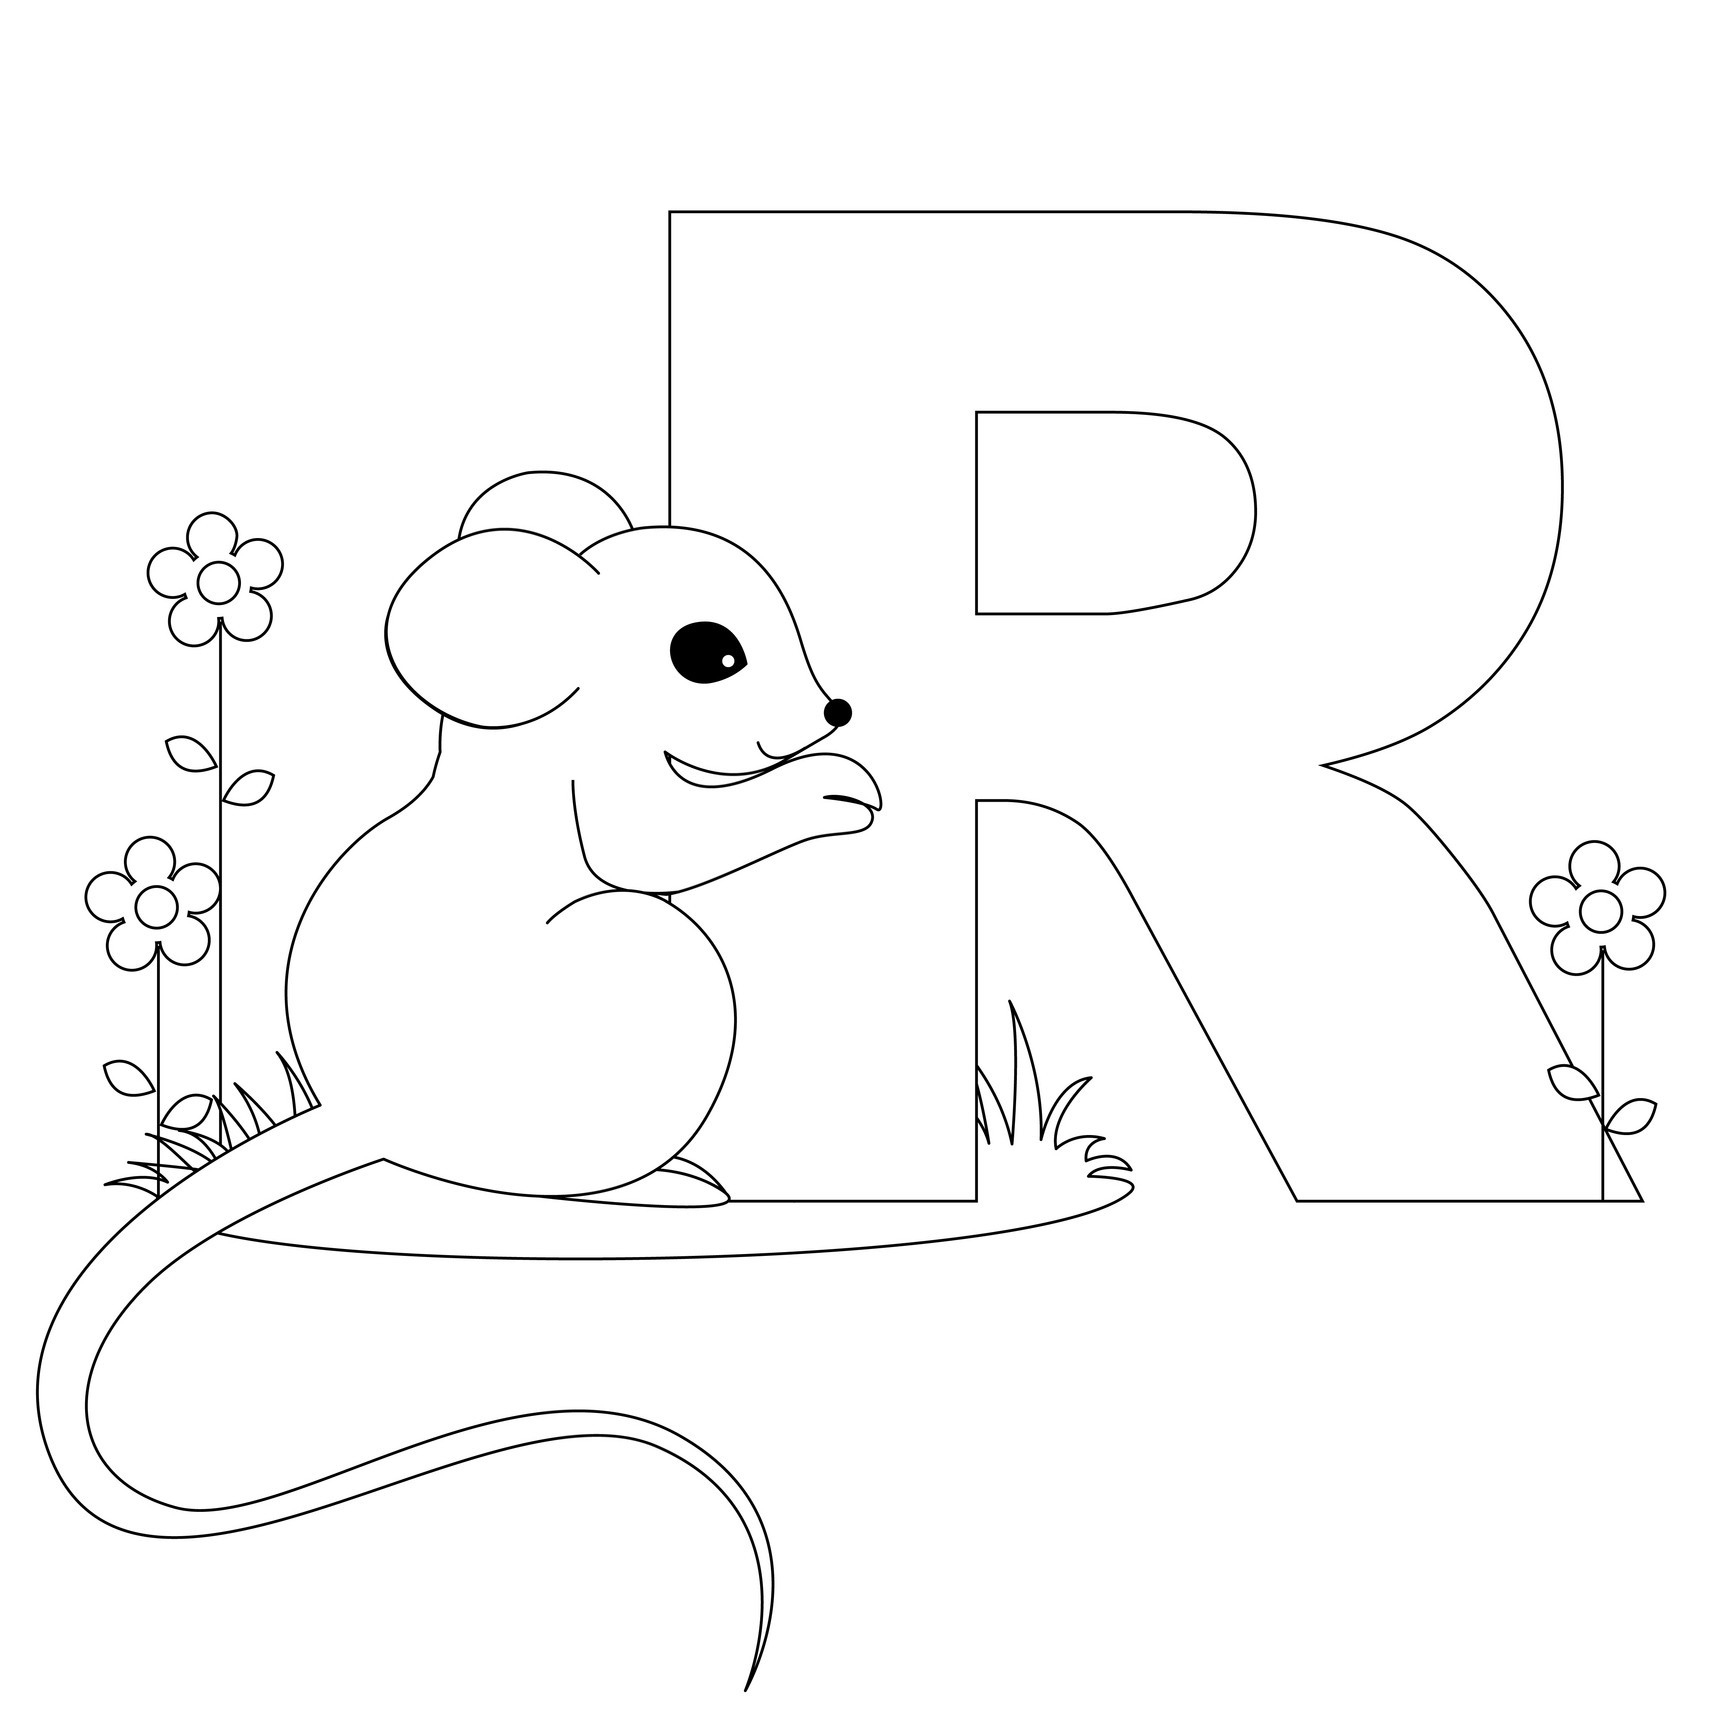 coloring pages alphabet free letter s alphabet coloring pages 3 free printable alphabet coloring pages free